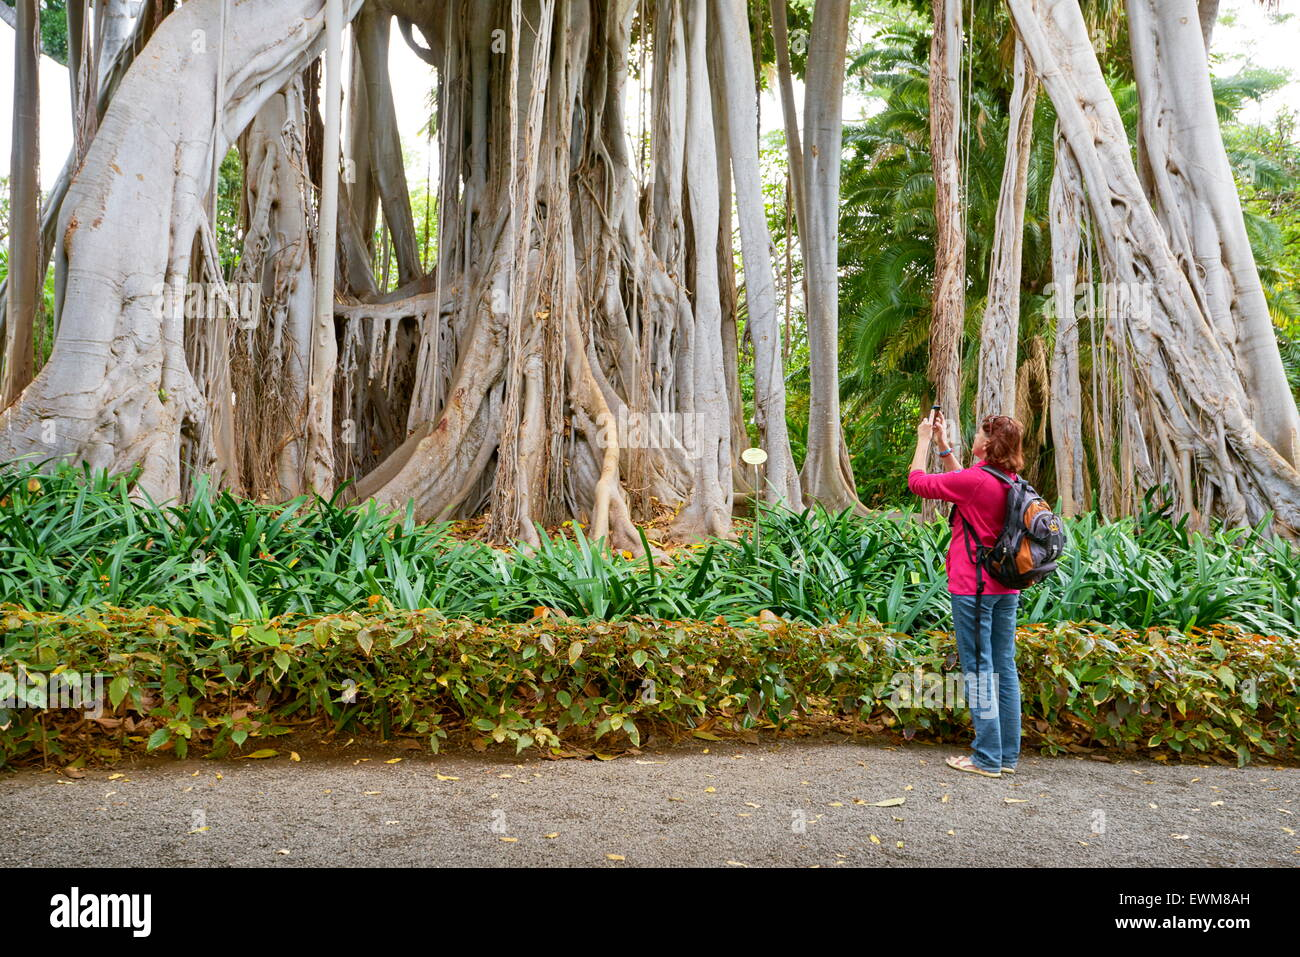 Ficus Tree, Botanic Garden, Puerto de la Cruz, Tenerife, Canary Islands, Spain - Stock Image